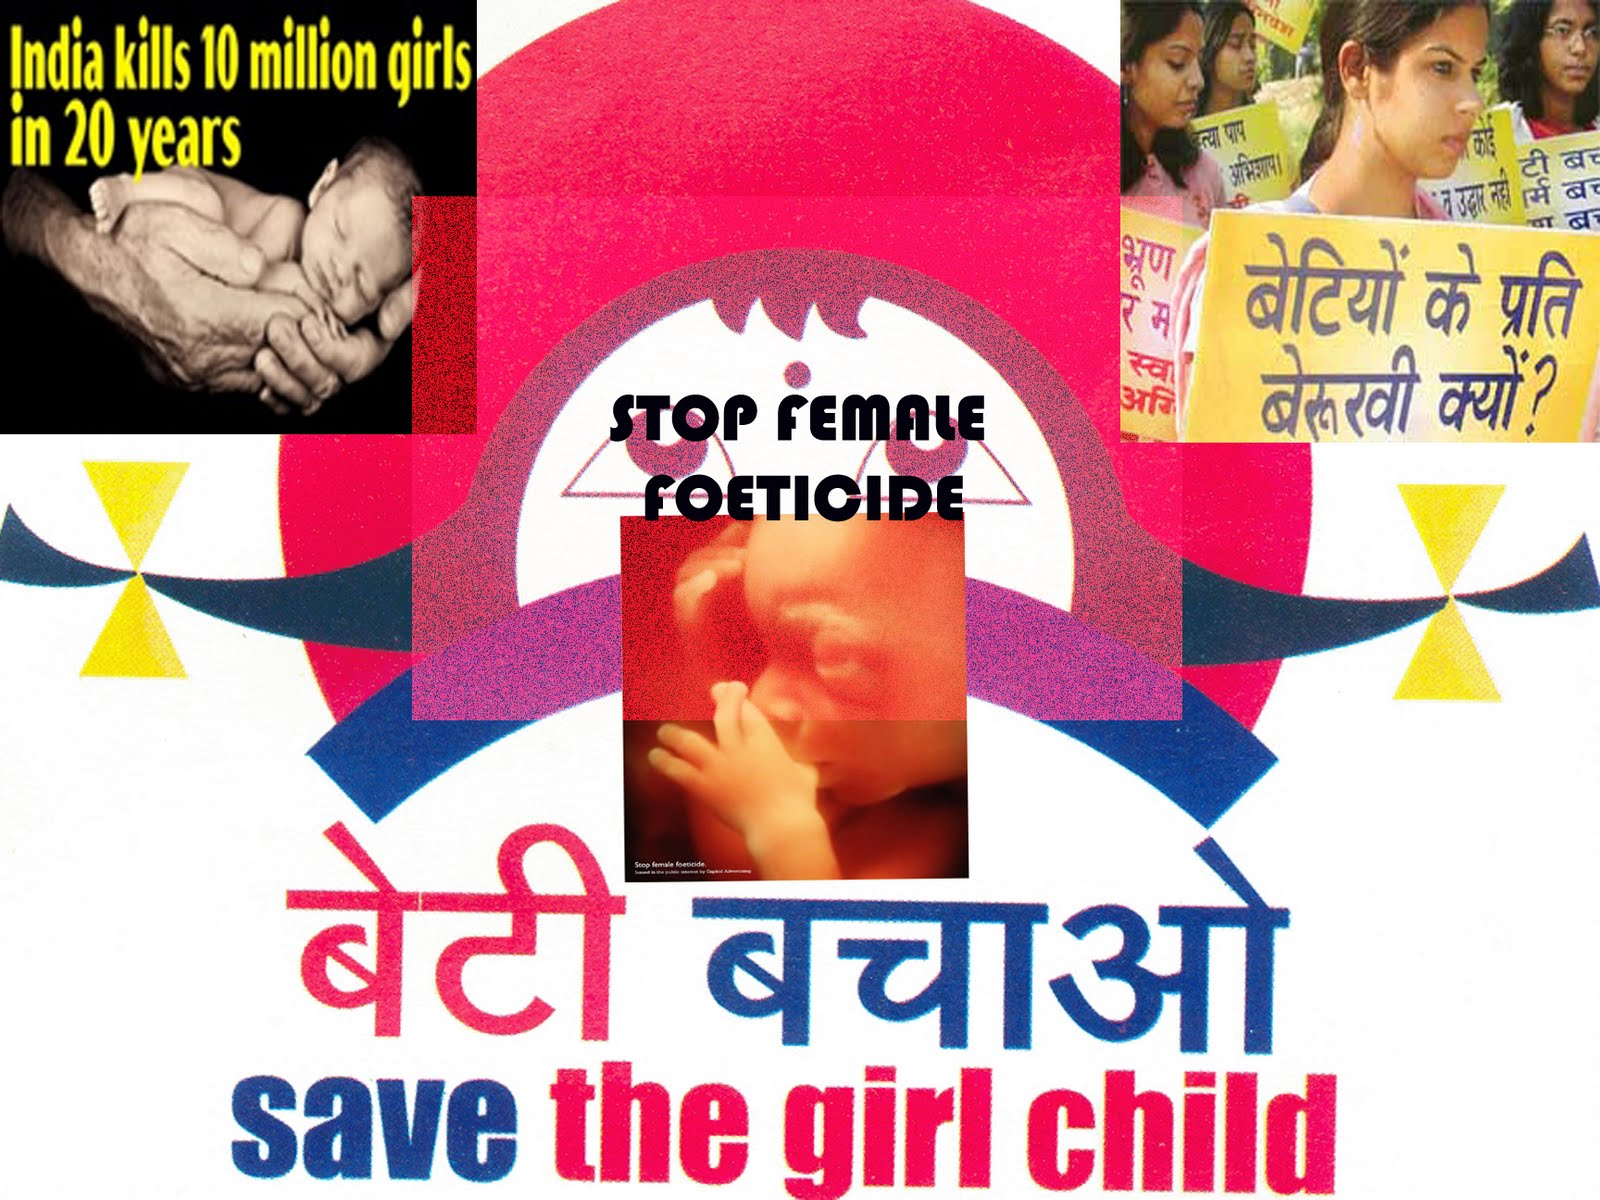 slogans on female foeticide A girl- nation's pride search this slogans when a girl is 'born decades of sex determination tests and female foeticide that has acquired genocide.